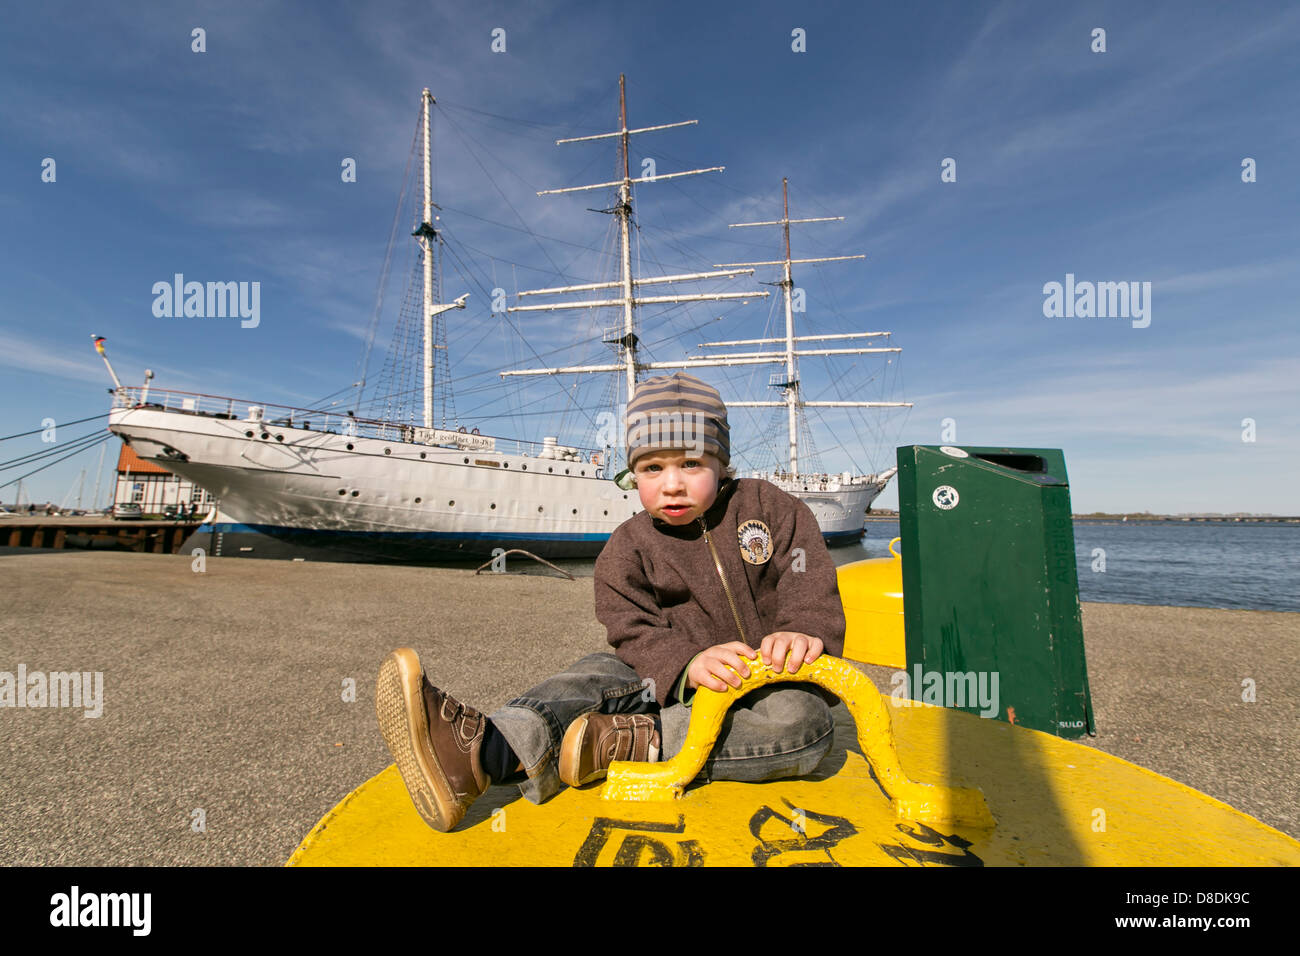 Young boy, 2 years, in front of a square-rigged ship in a harbour - Stock Image